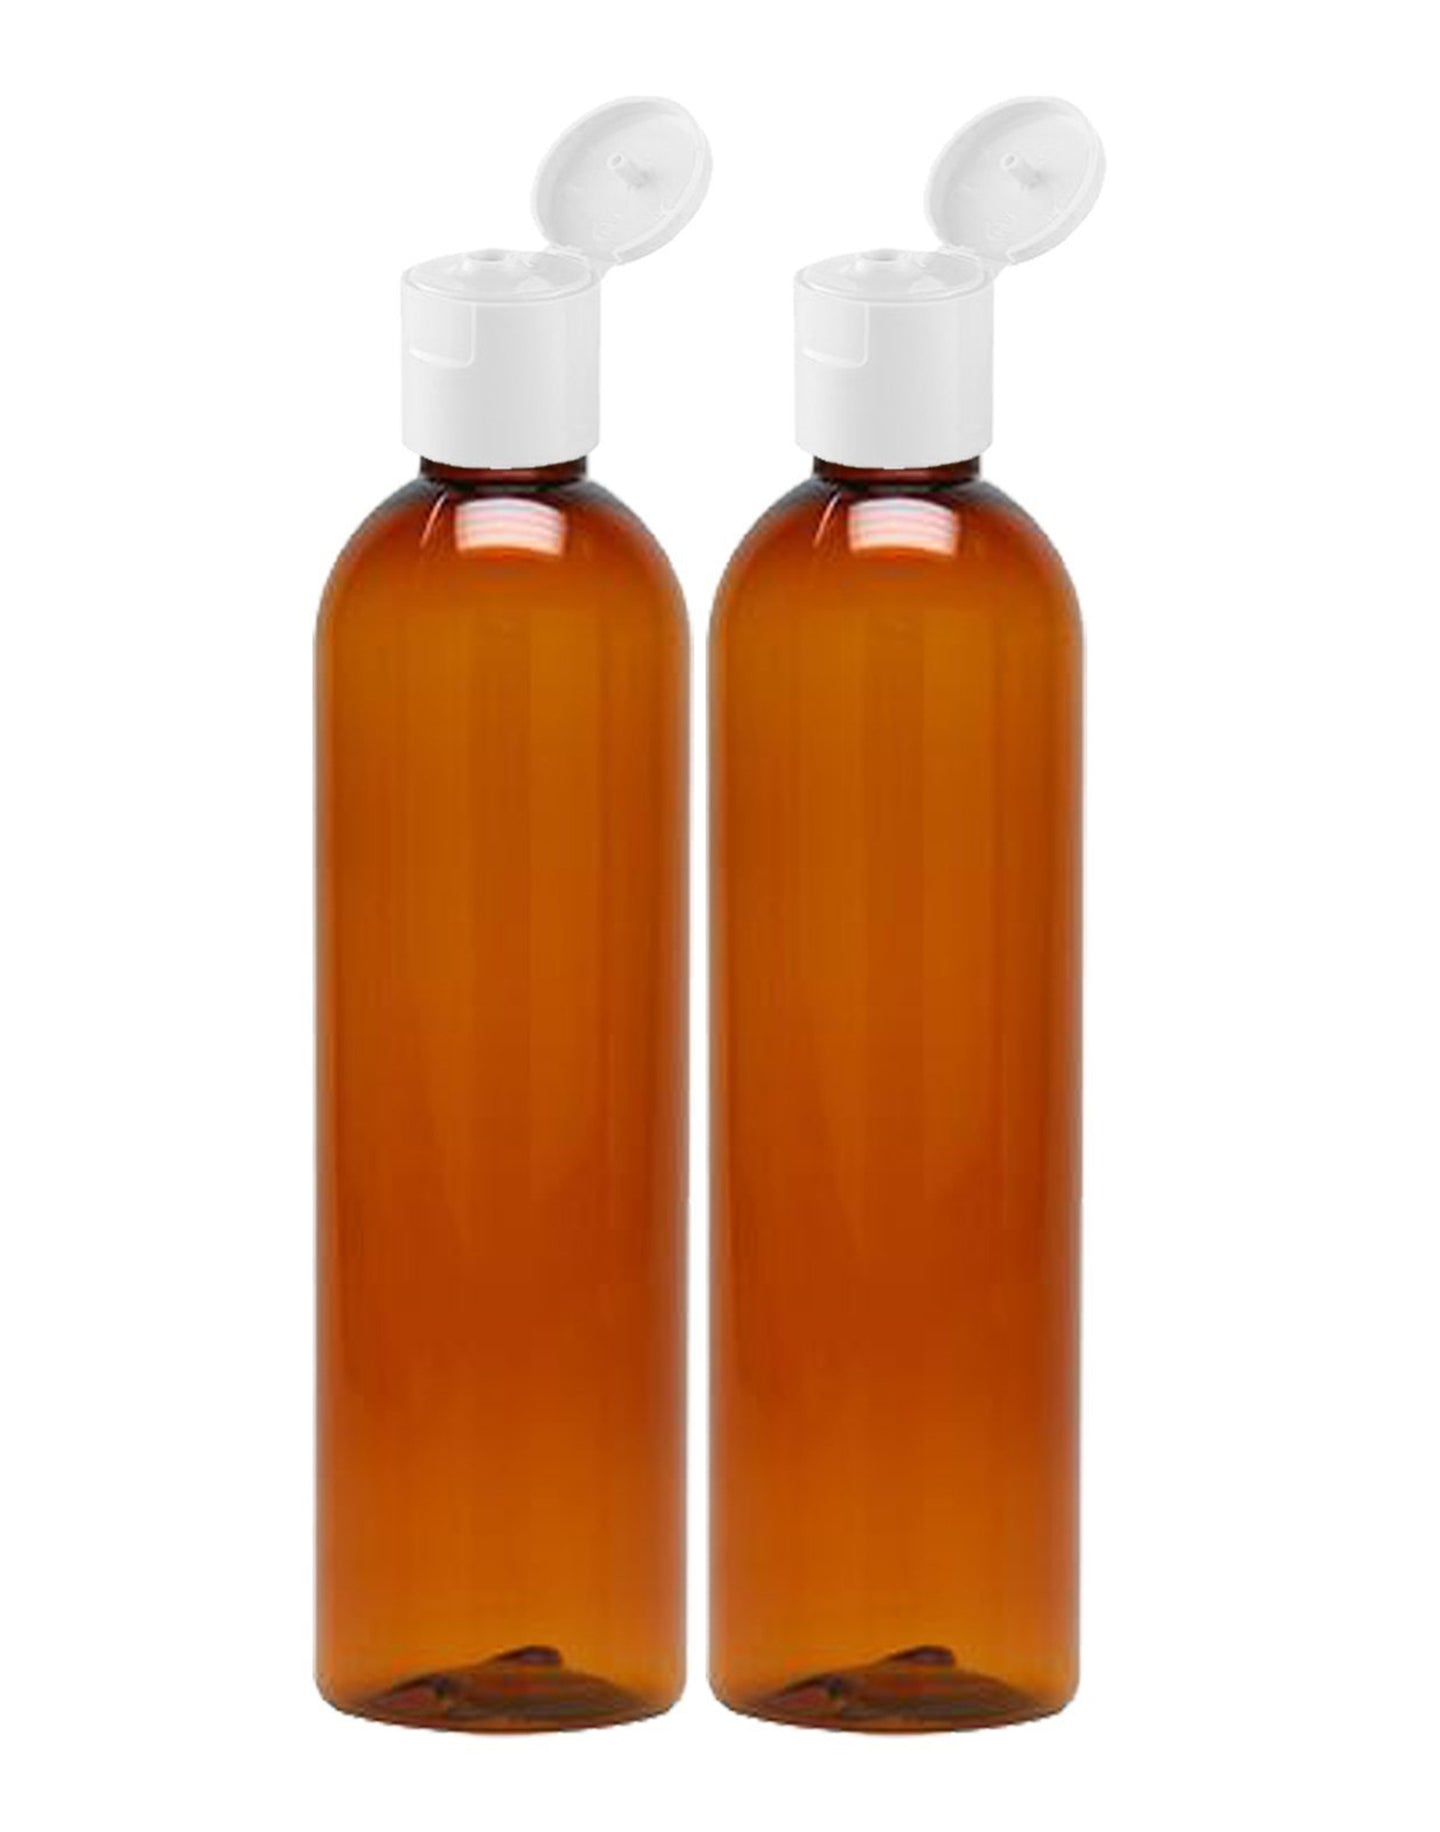 MoYo Natural Labs 8 oz Travel Bottles, Empty Travel Containers with Flip Caps, BPA Free PET Plastic Squeezable Toiletry/Cosmetic Bottles (2 pack, Amber)